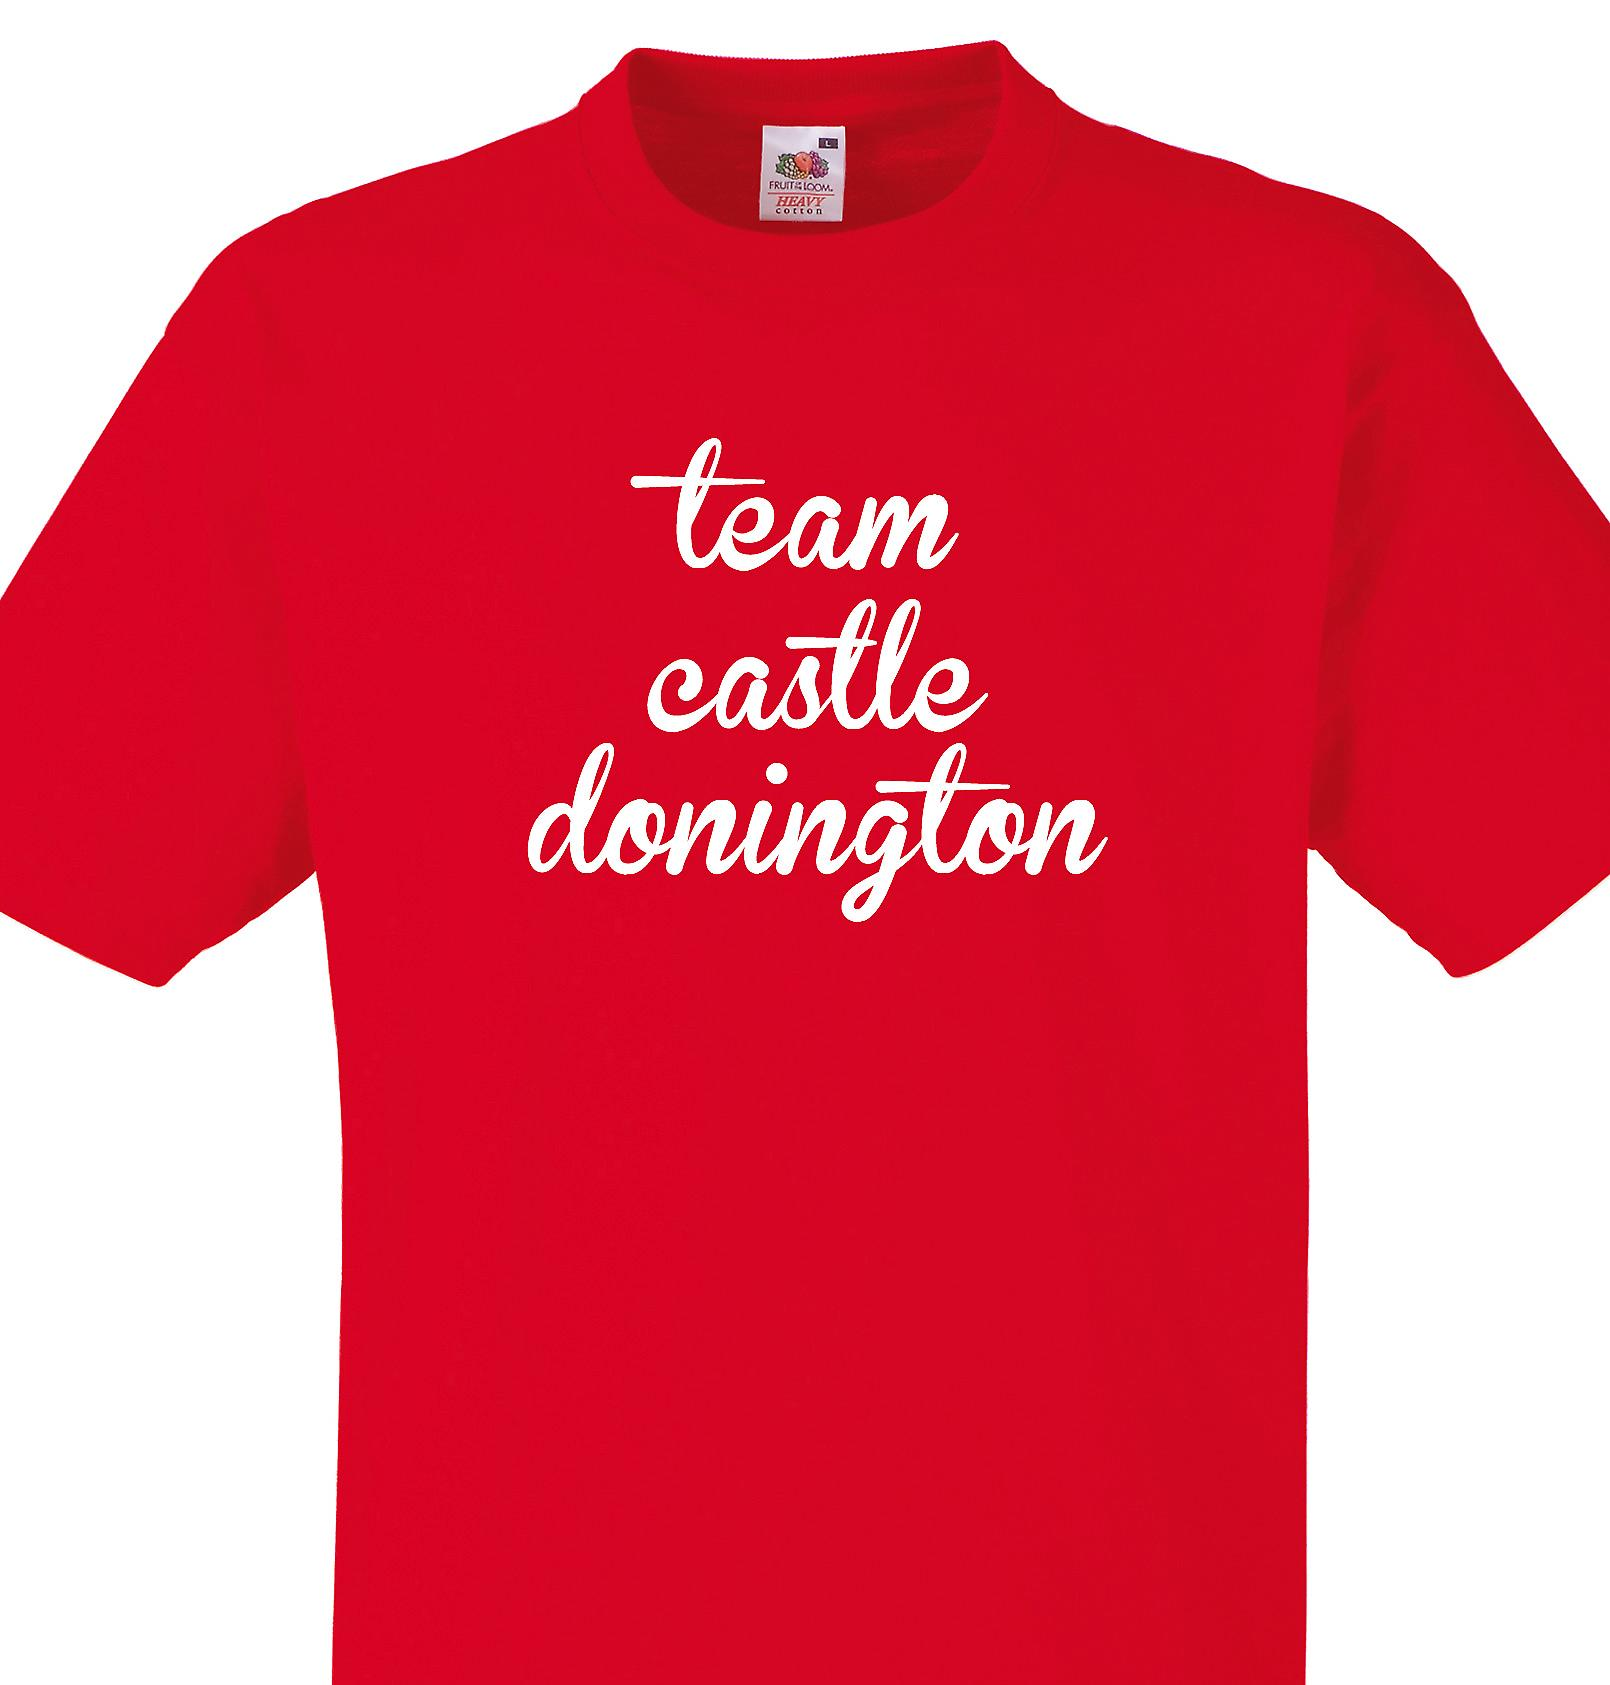 Team Castle donington Red T shirt